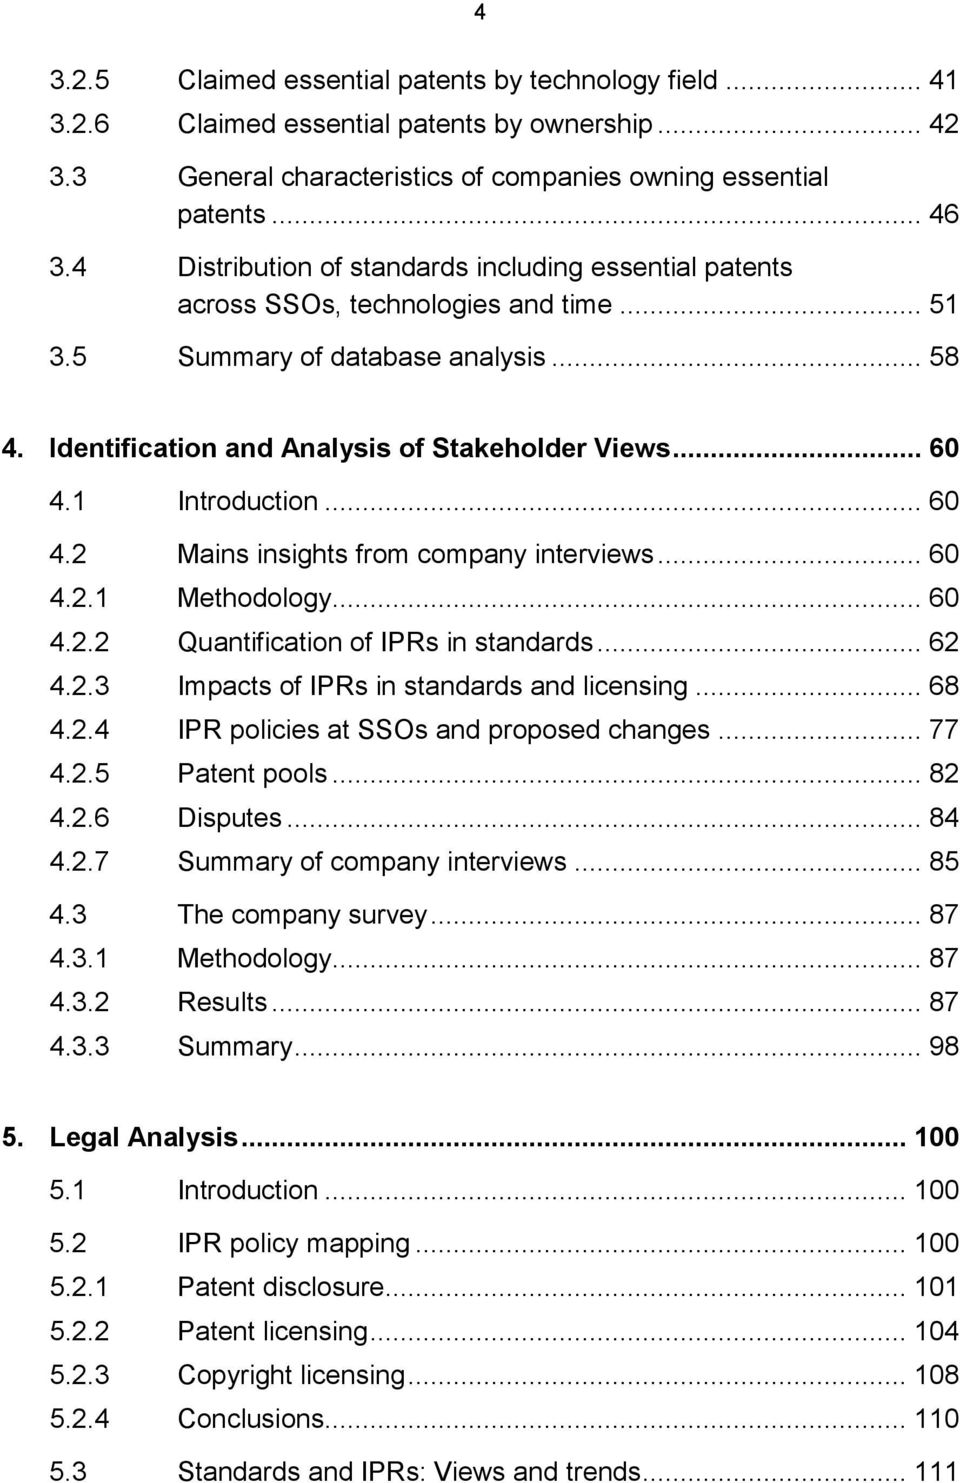 1 Introduction... 60 4.2 Mains insights from company interviews... 60 4.2.1 Methodology... 60 4.2.2 Quantification of IPRs in standards... 62 4.2.3 Impacts of IPRs in standards and licensing... 68 4.